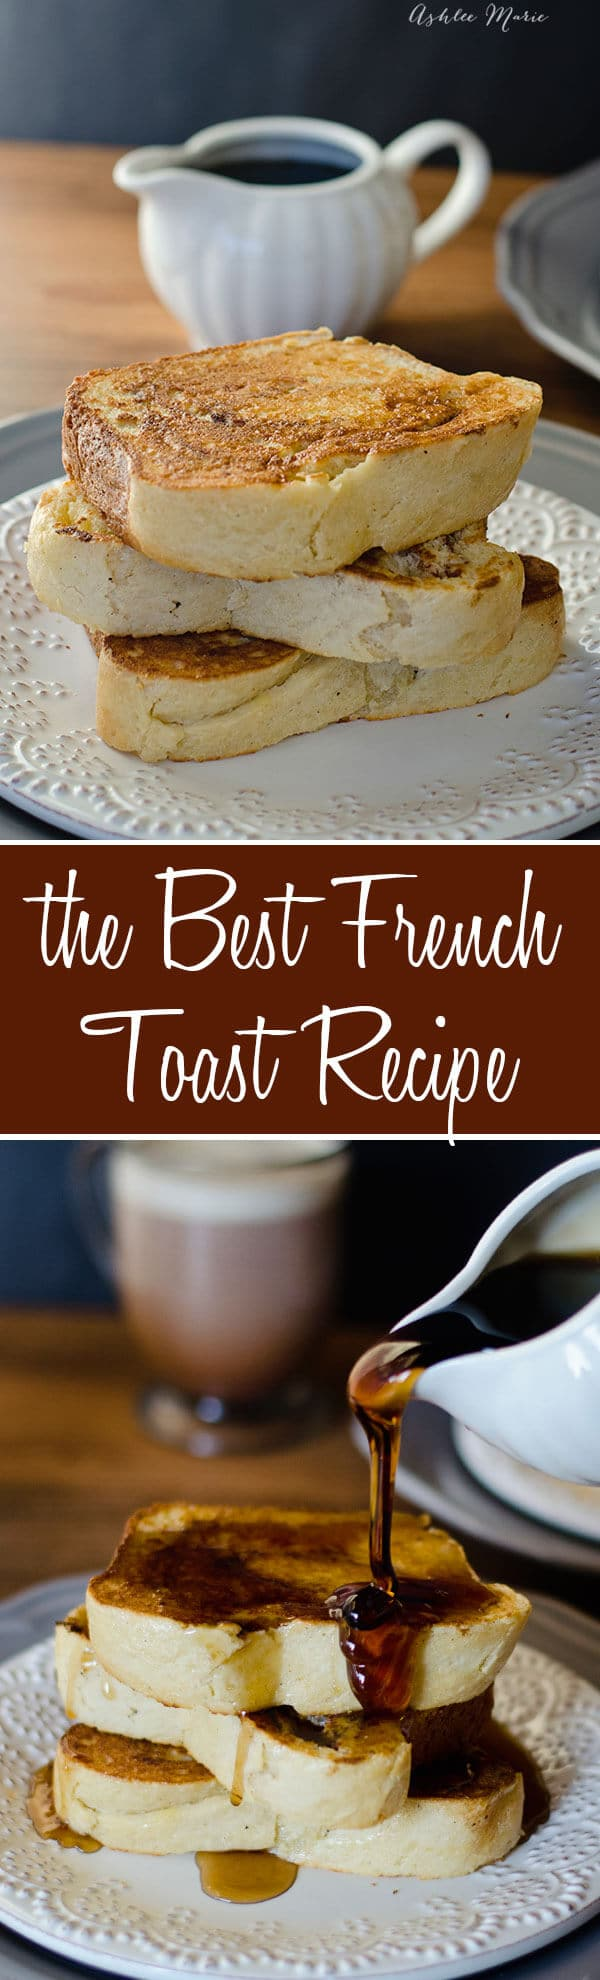 this french toast recipe creates a golden rich crust that everyone loves  #breakfast #frenchtoast #breadrecipe #brunch